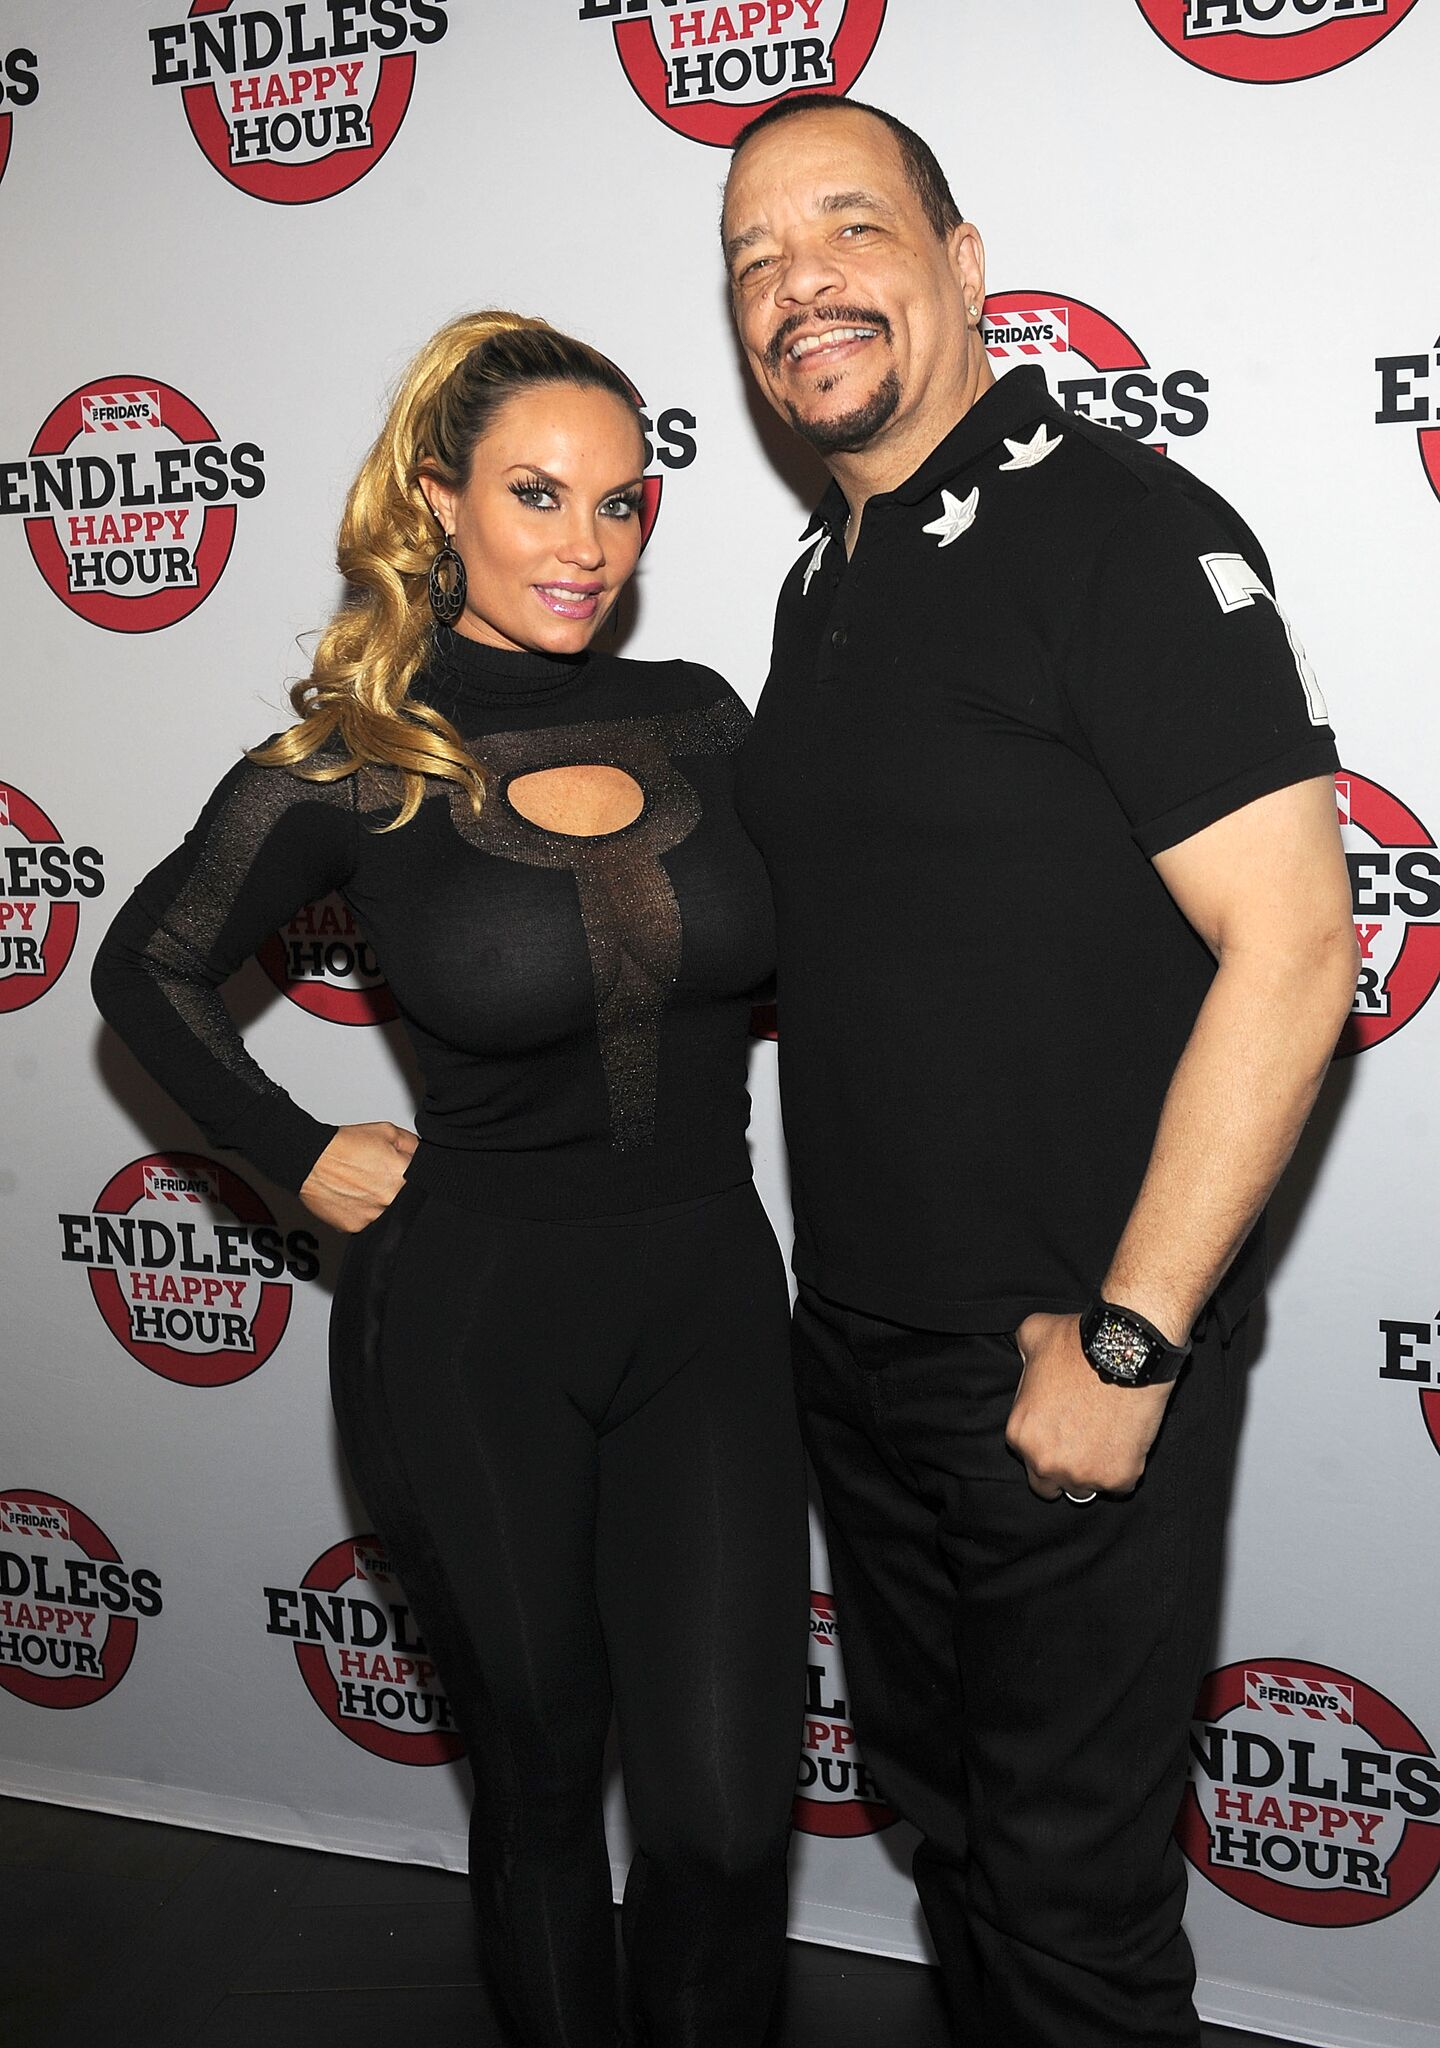 Coco Austin and Ice-T at the TGI Fridays Endless Happy Hour | Getty Images